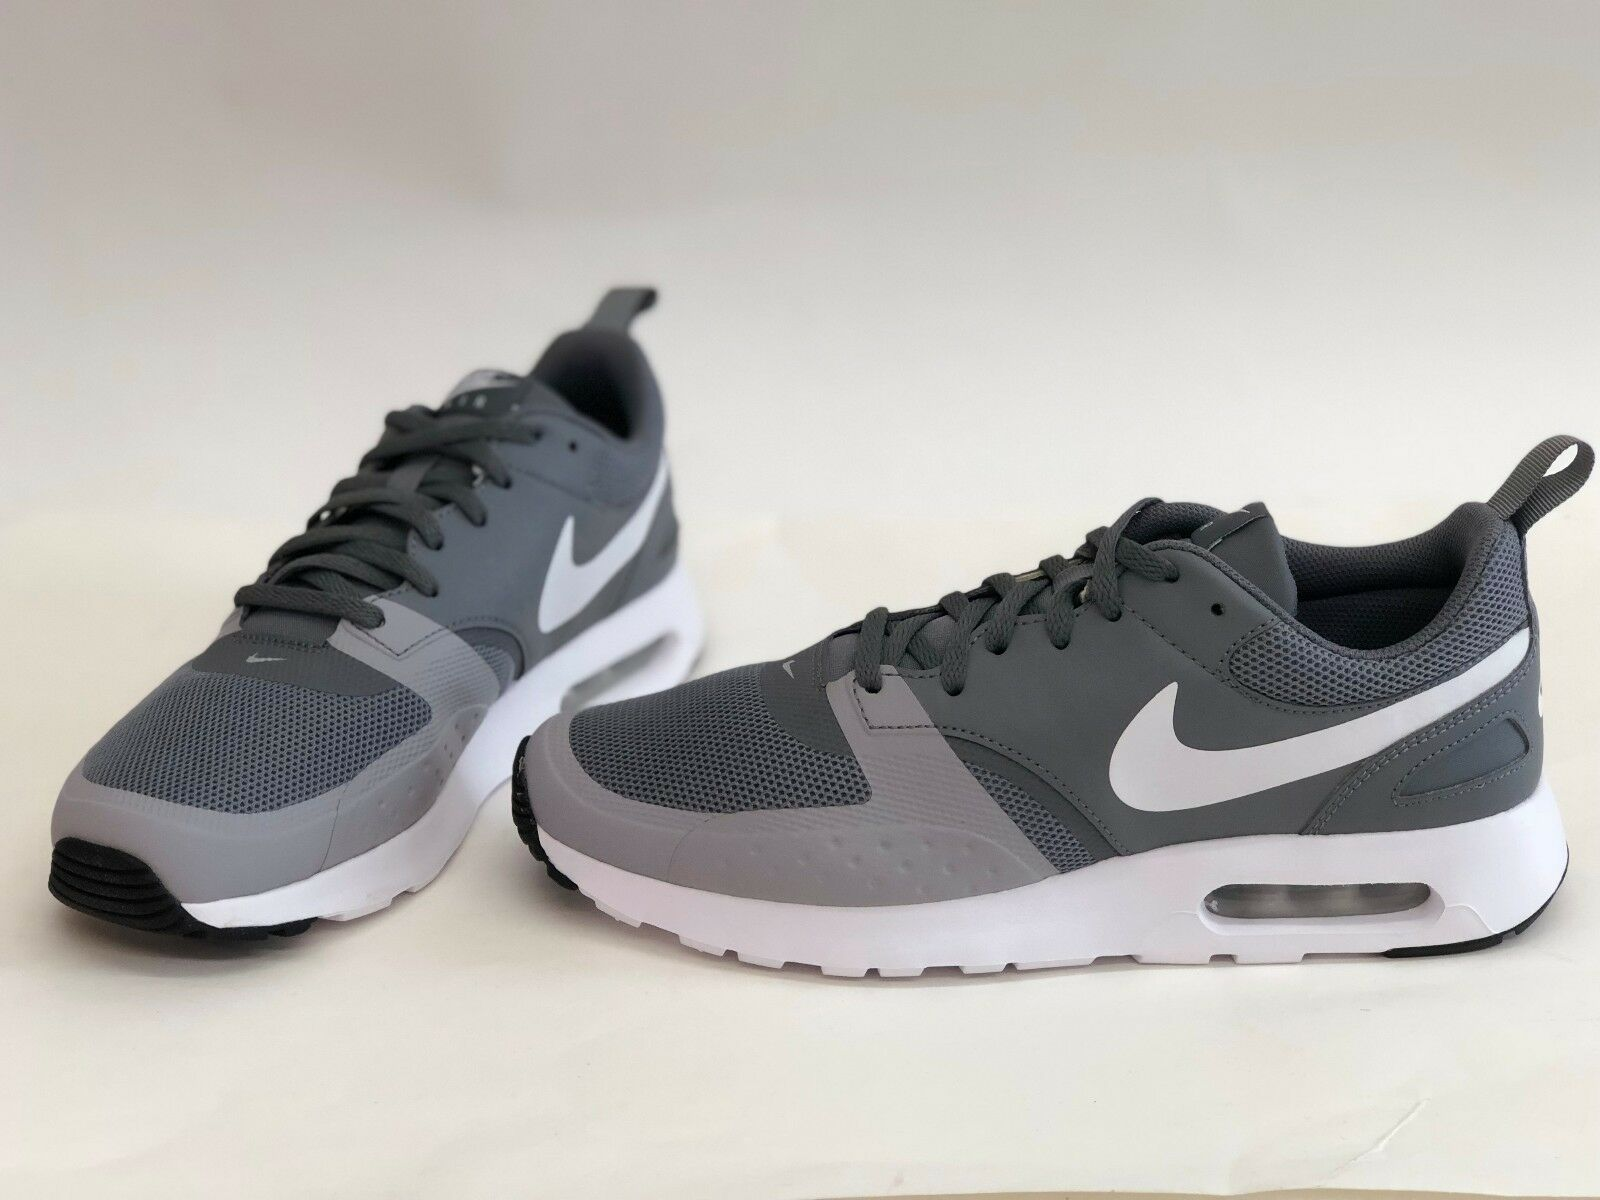 NIB MENS SIZE 10.5 NIKE AIR MAX VISION RUNNING SNEAKERS GREY 918230-006